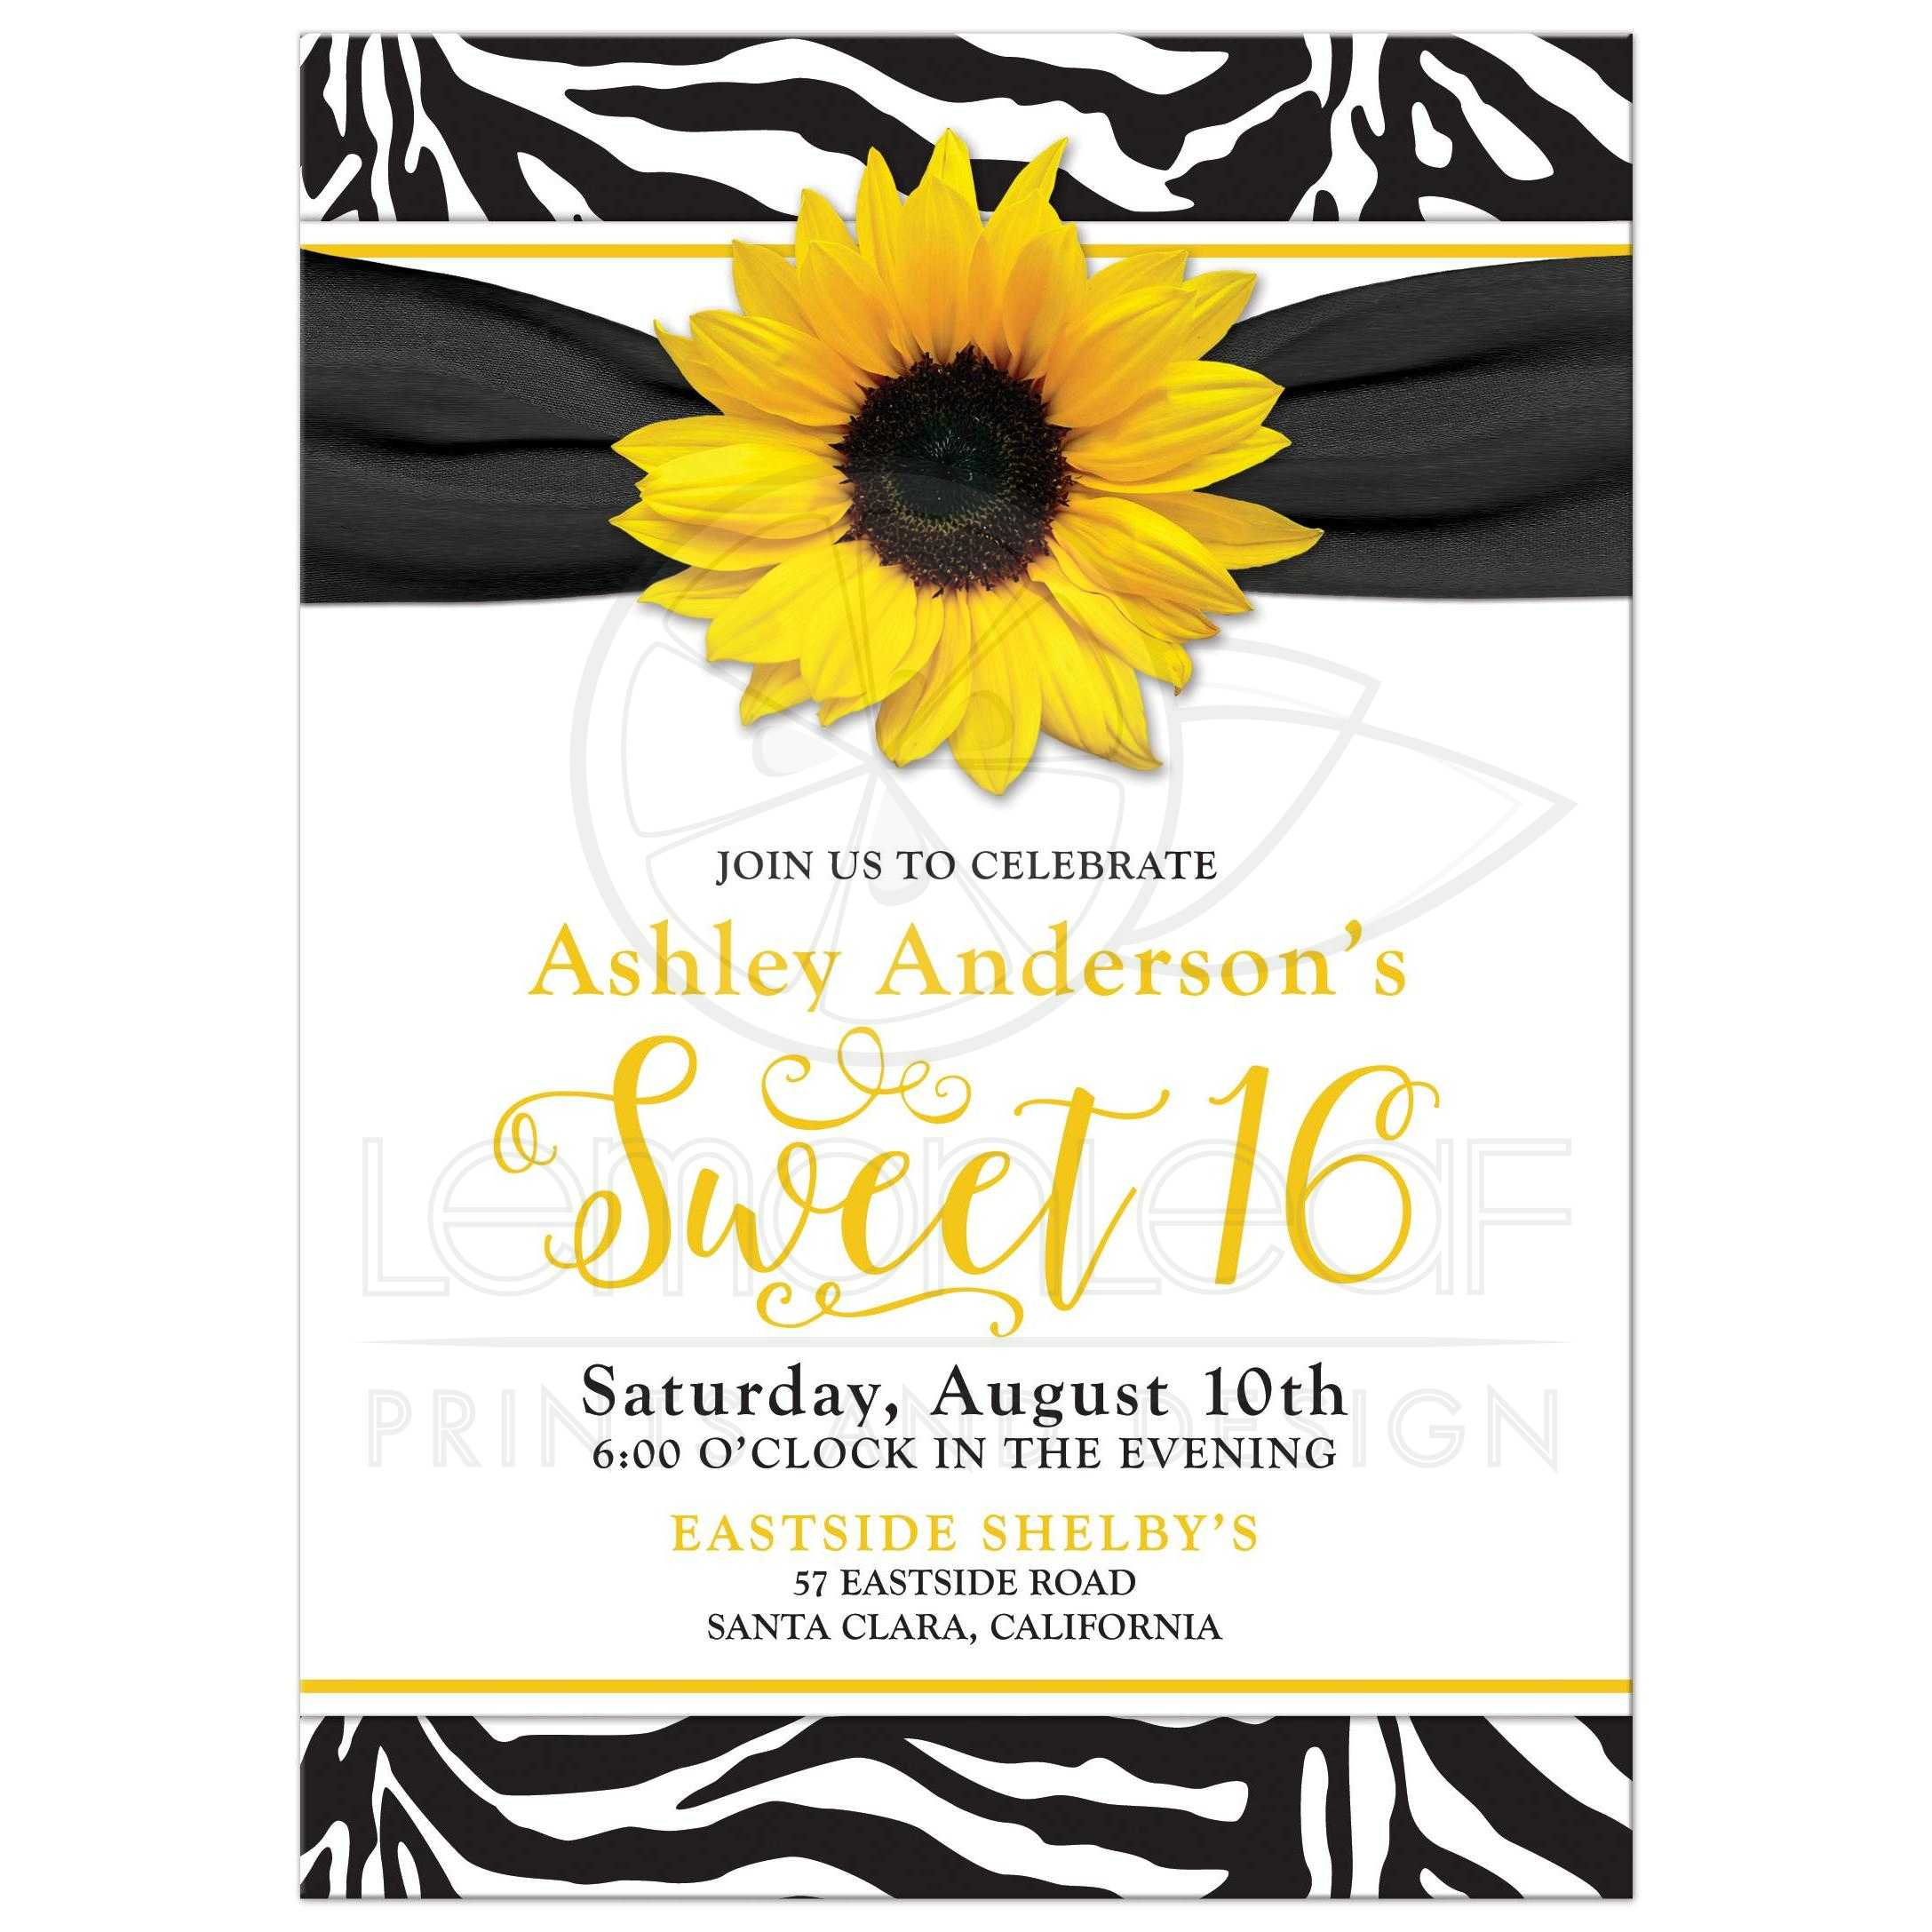 Chic Sweet 16 Birthday Invitation | Yellow Sunflower Black White ...